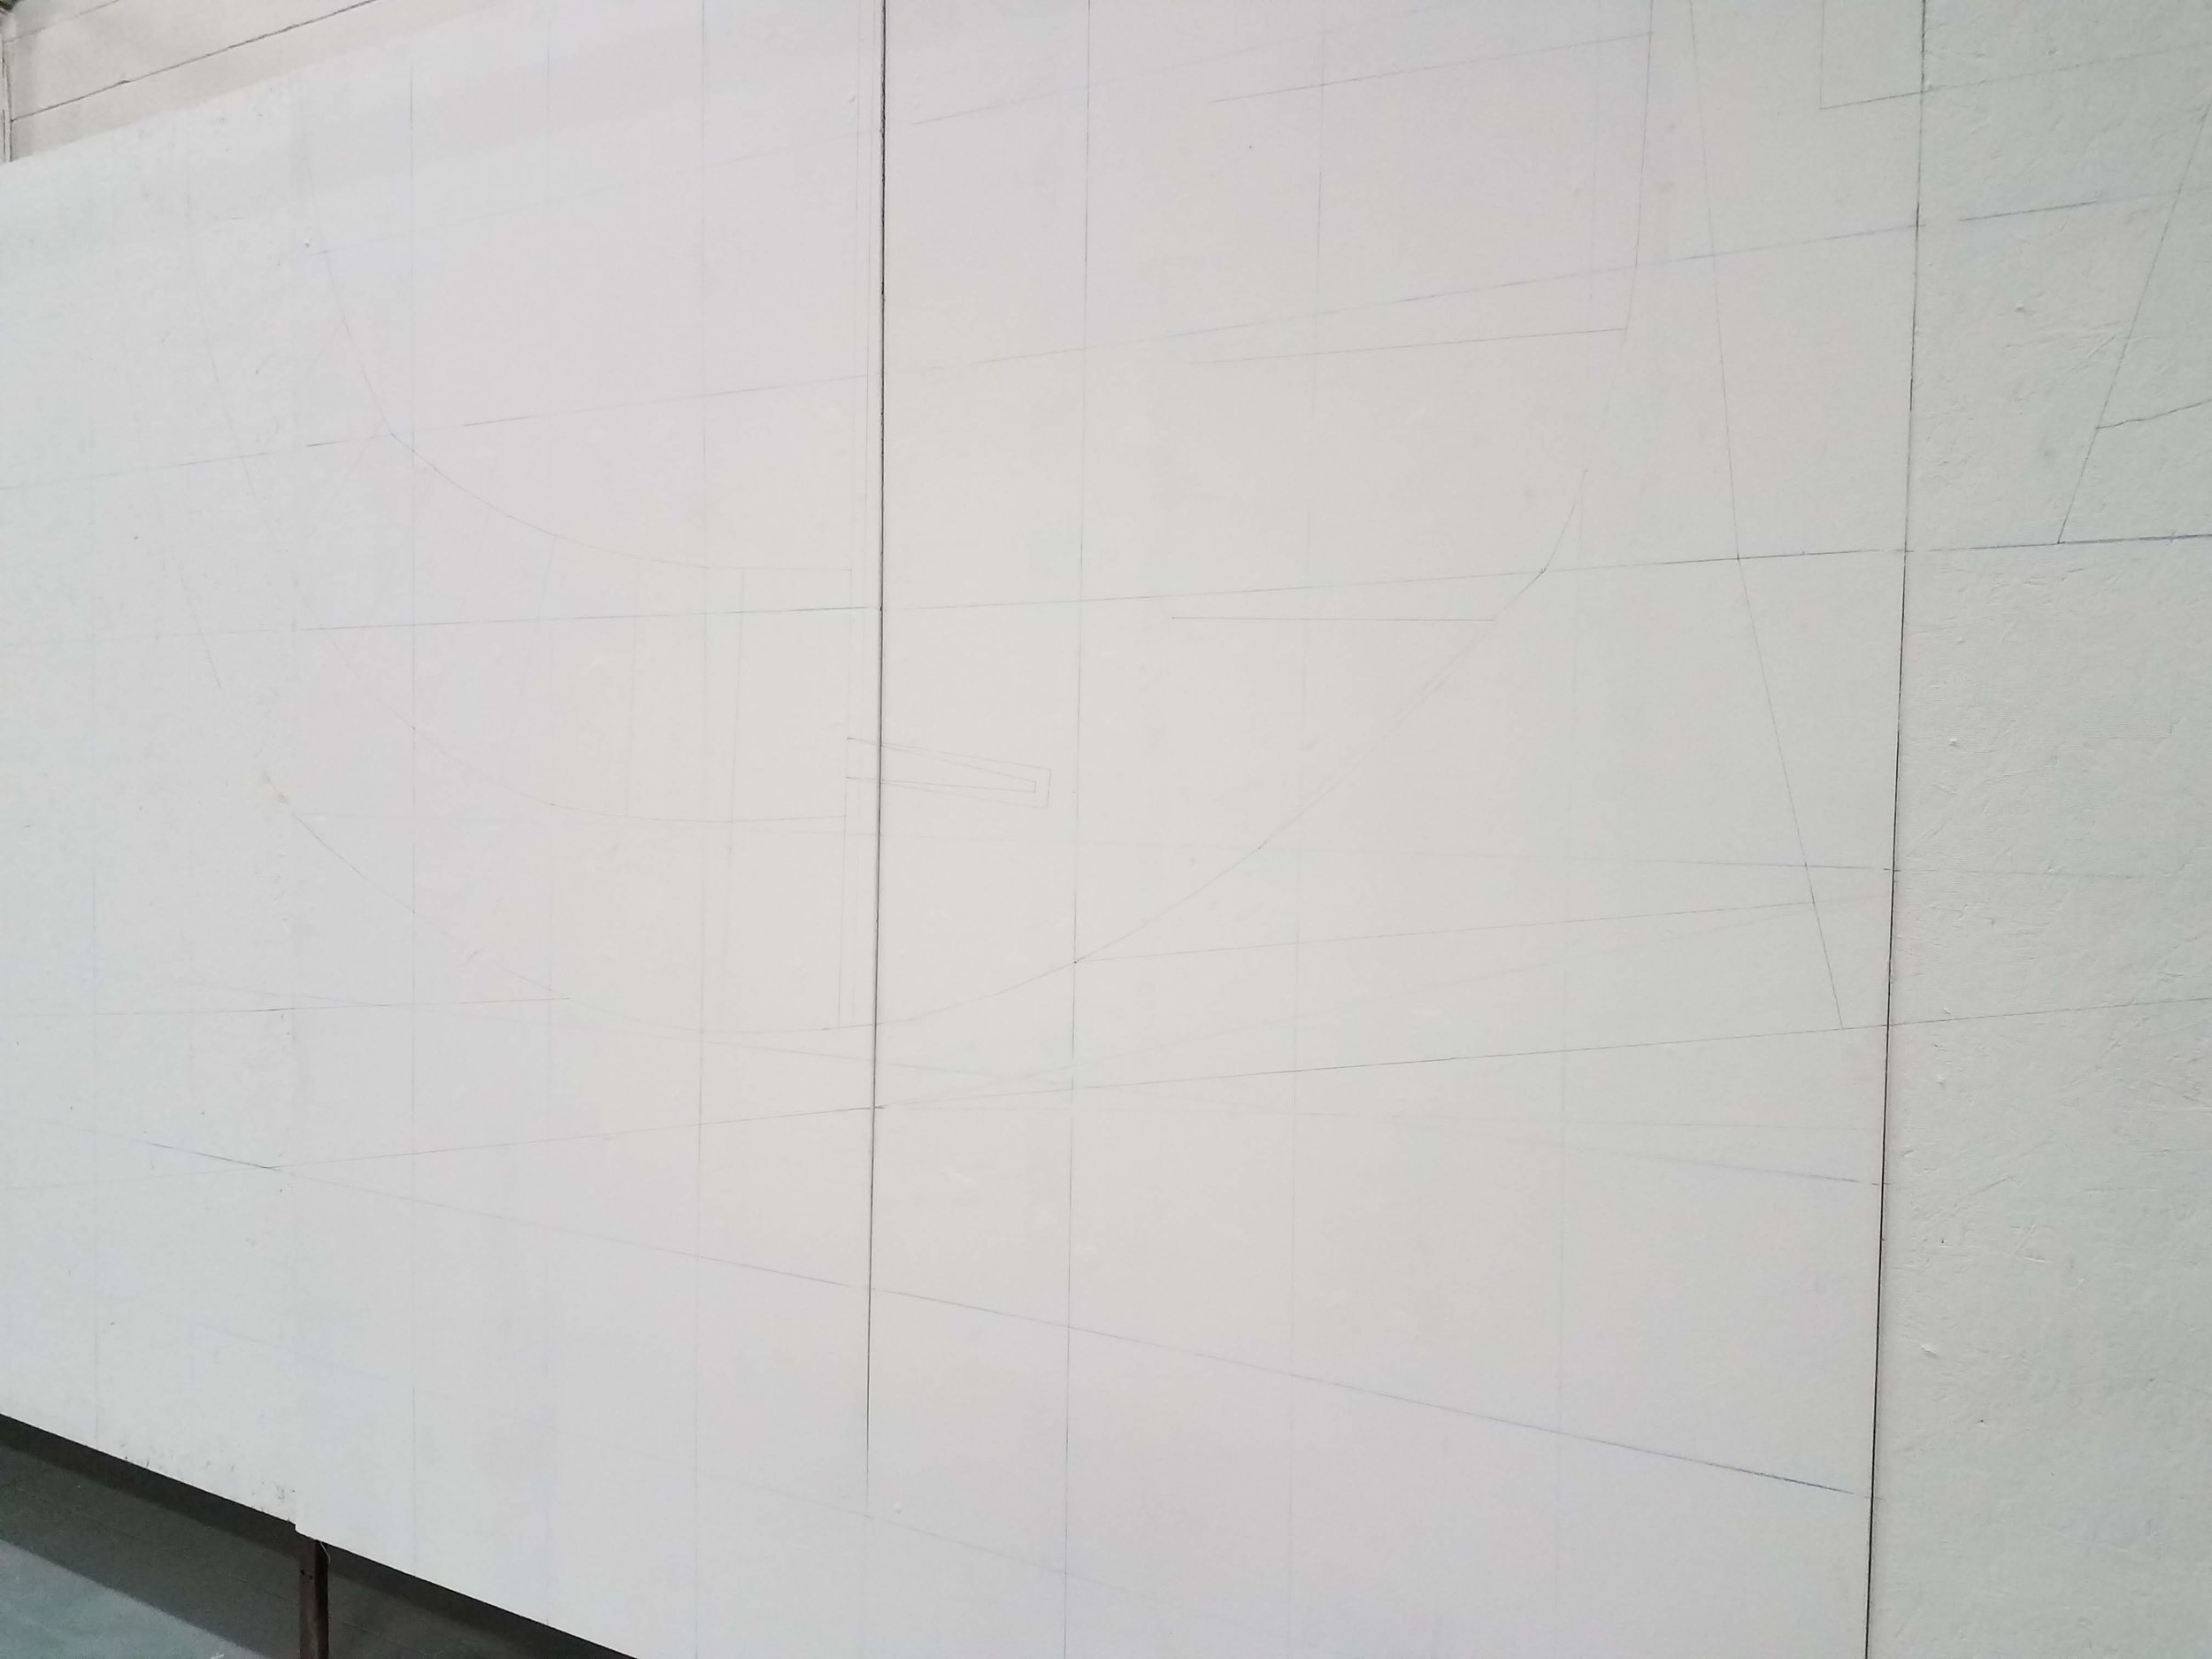 For accuracy, Chris created a grid of chalk lines and drew the outlines of the mural for his volunteer.